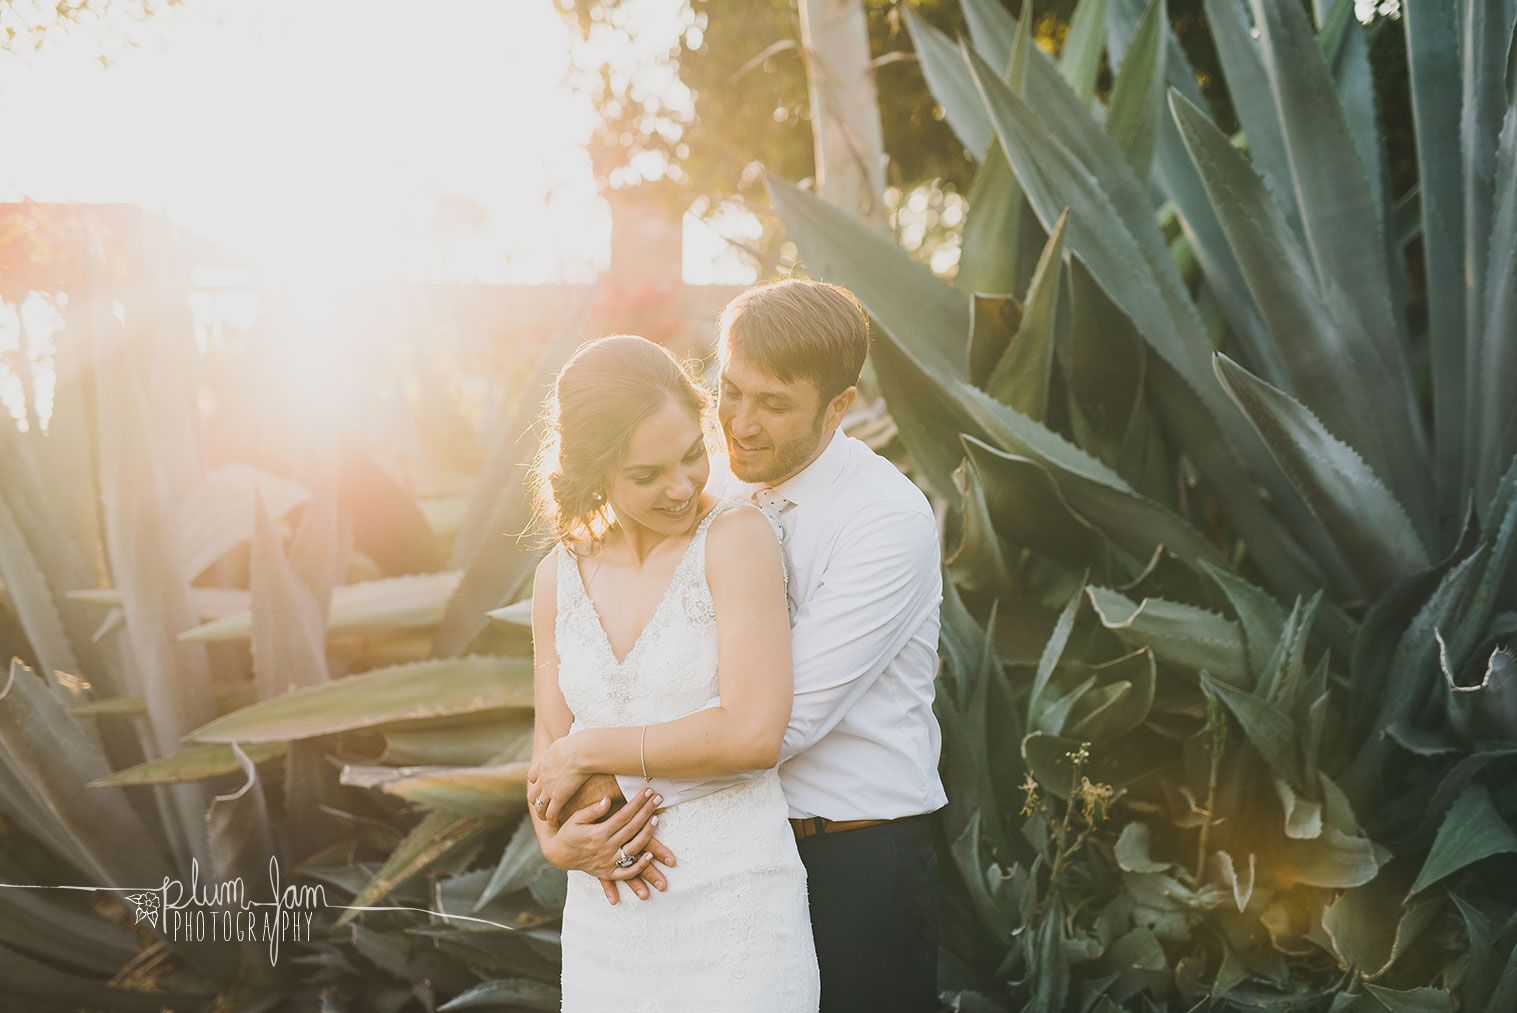 AllieRyanWedding-Blog24-PlumJamPhotography